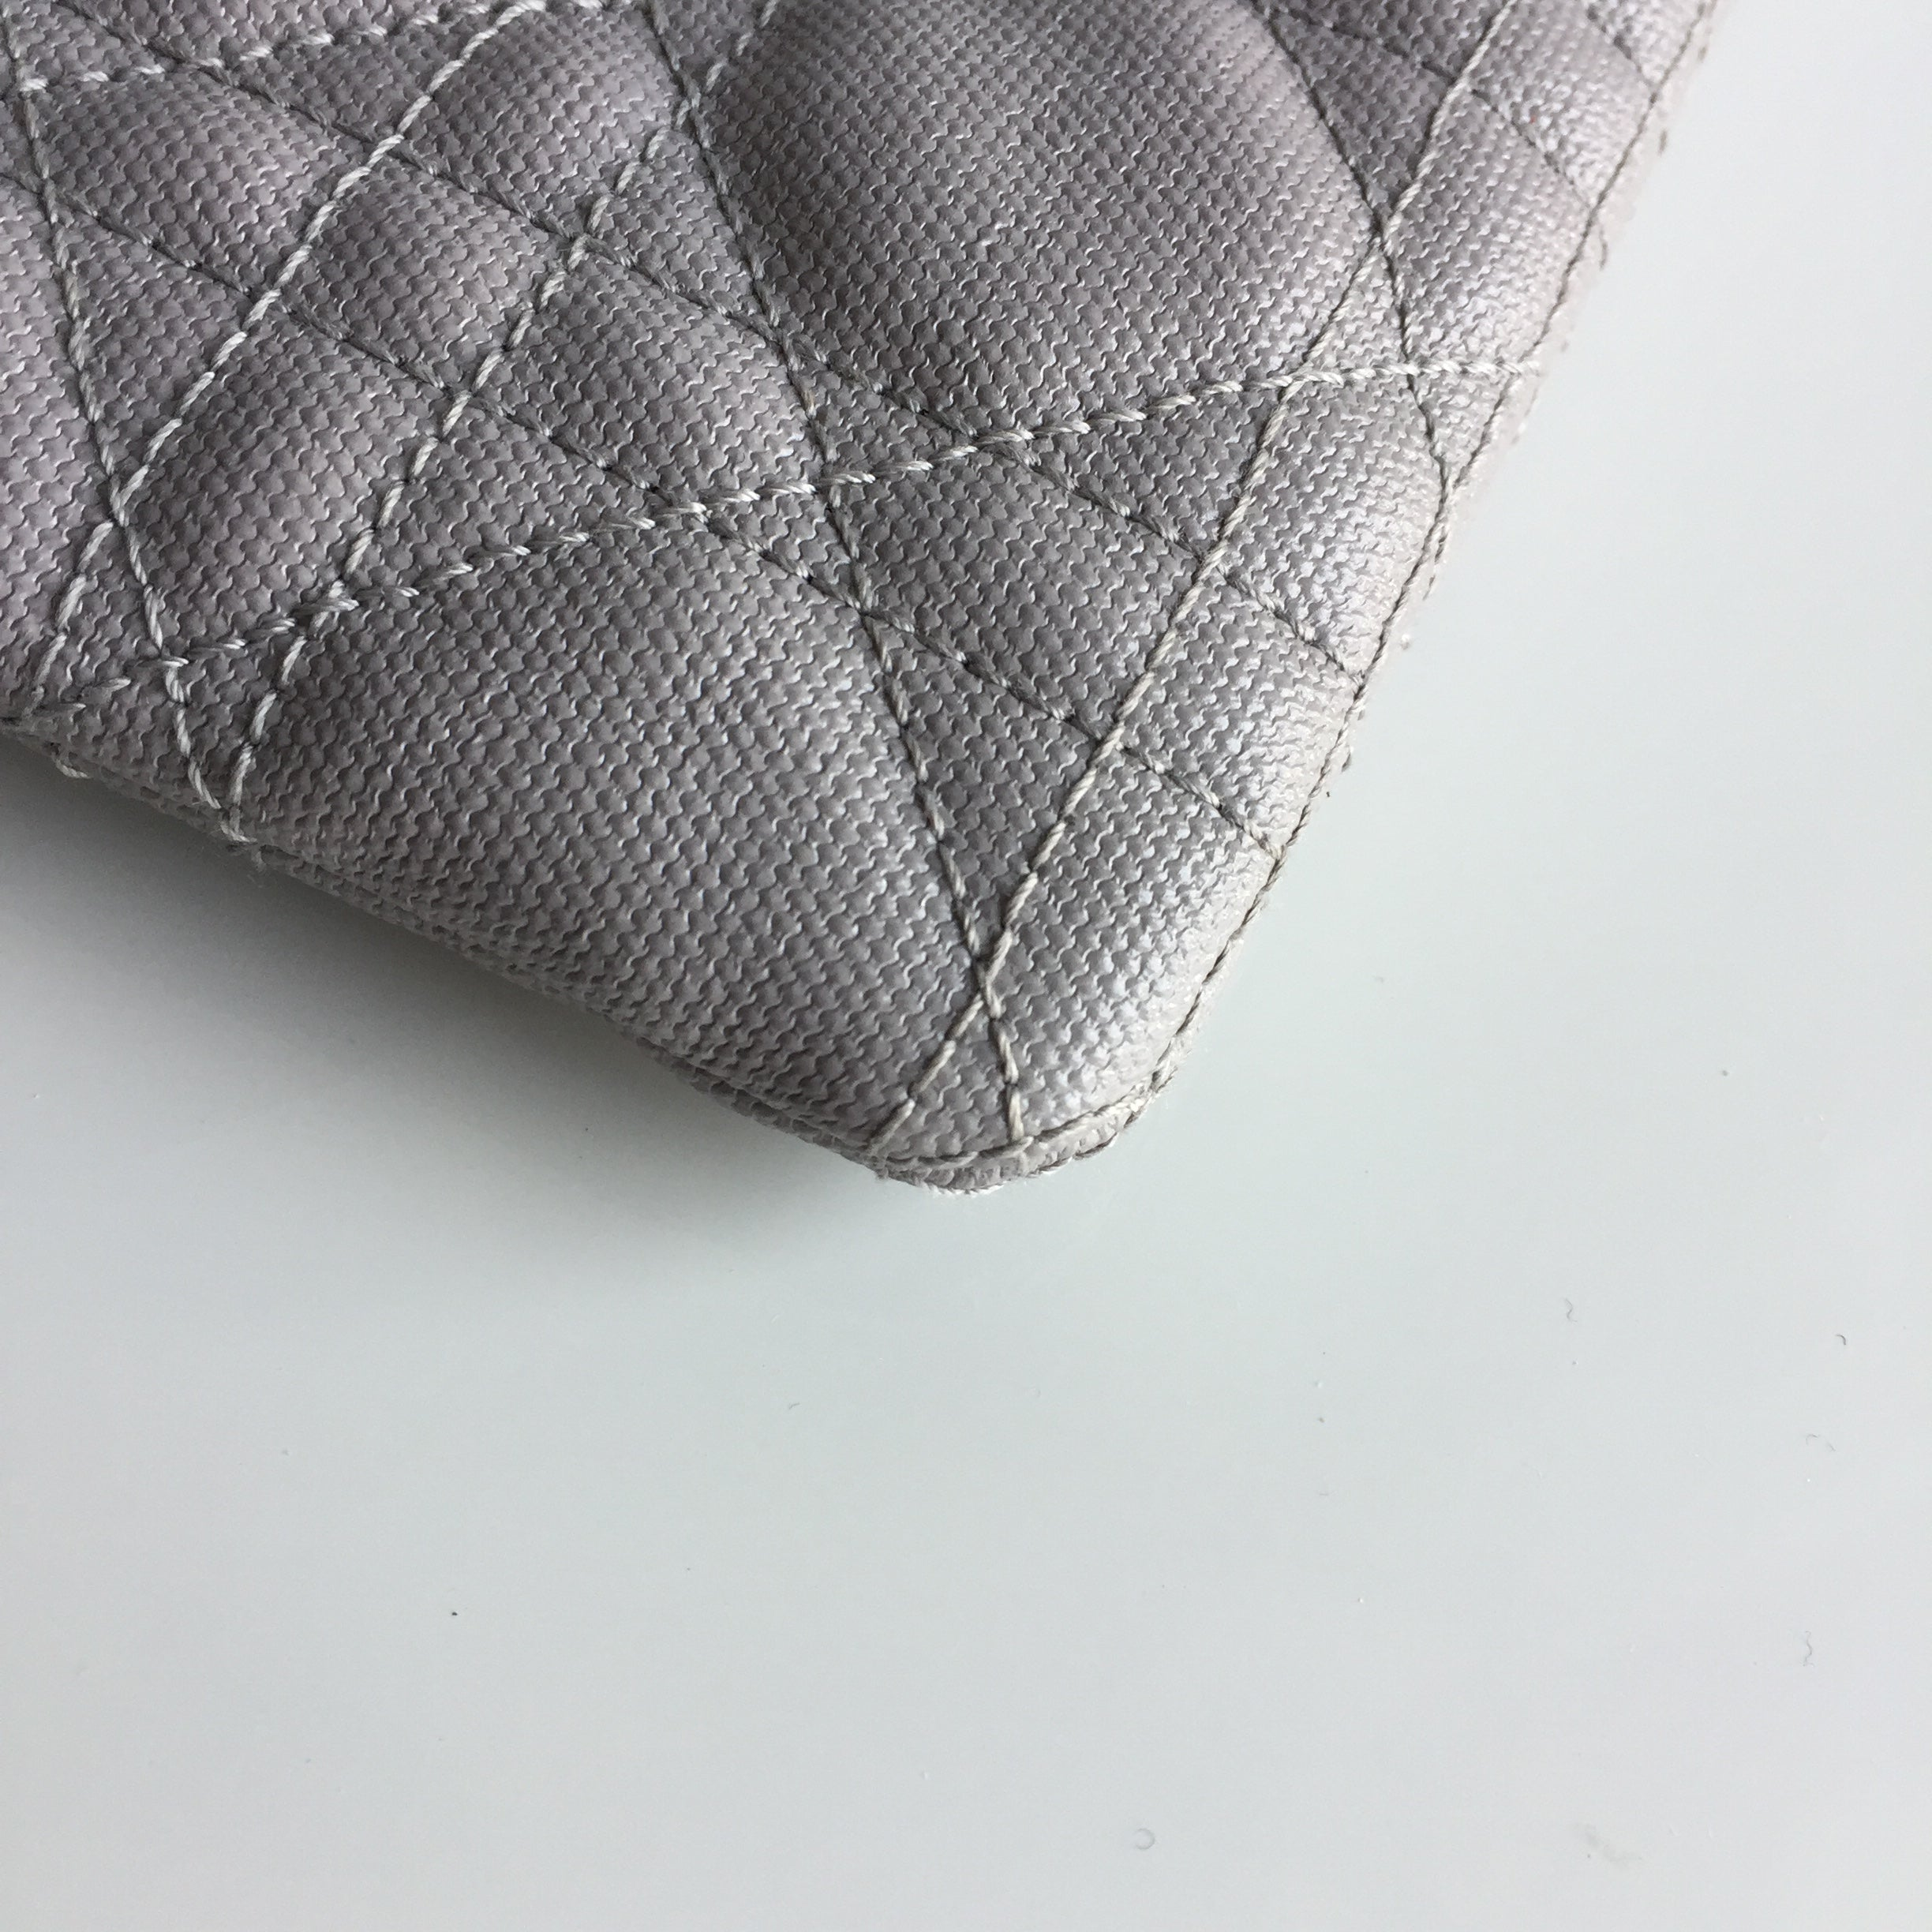 Authentic CHRISTIAN DIOR Coated Canvas Clutch